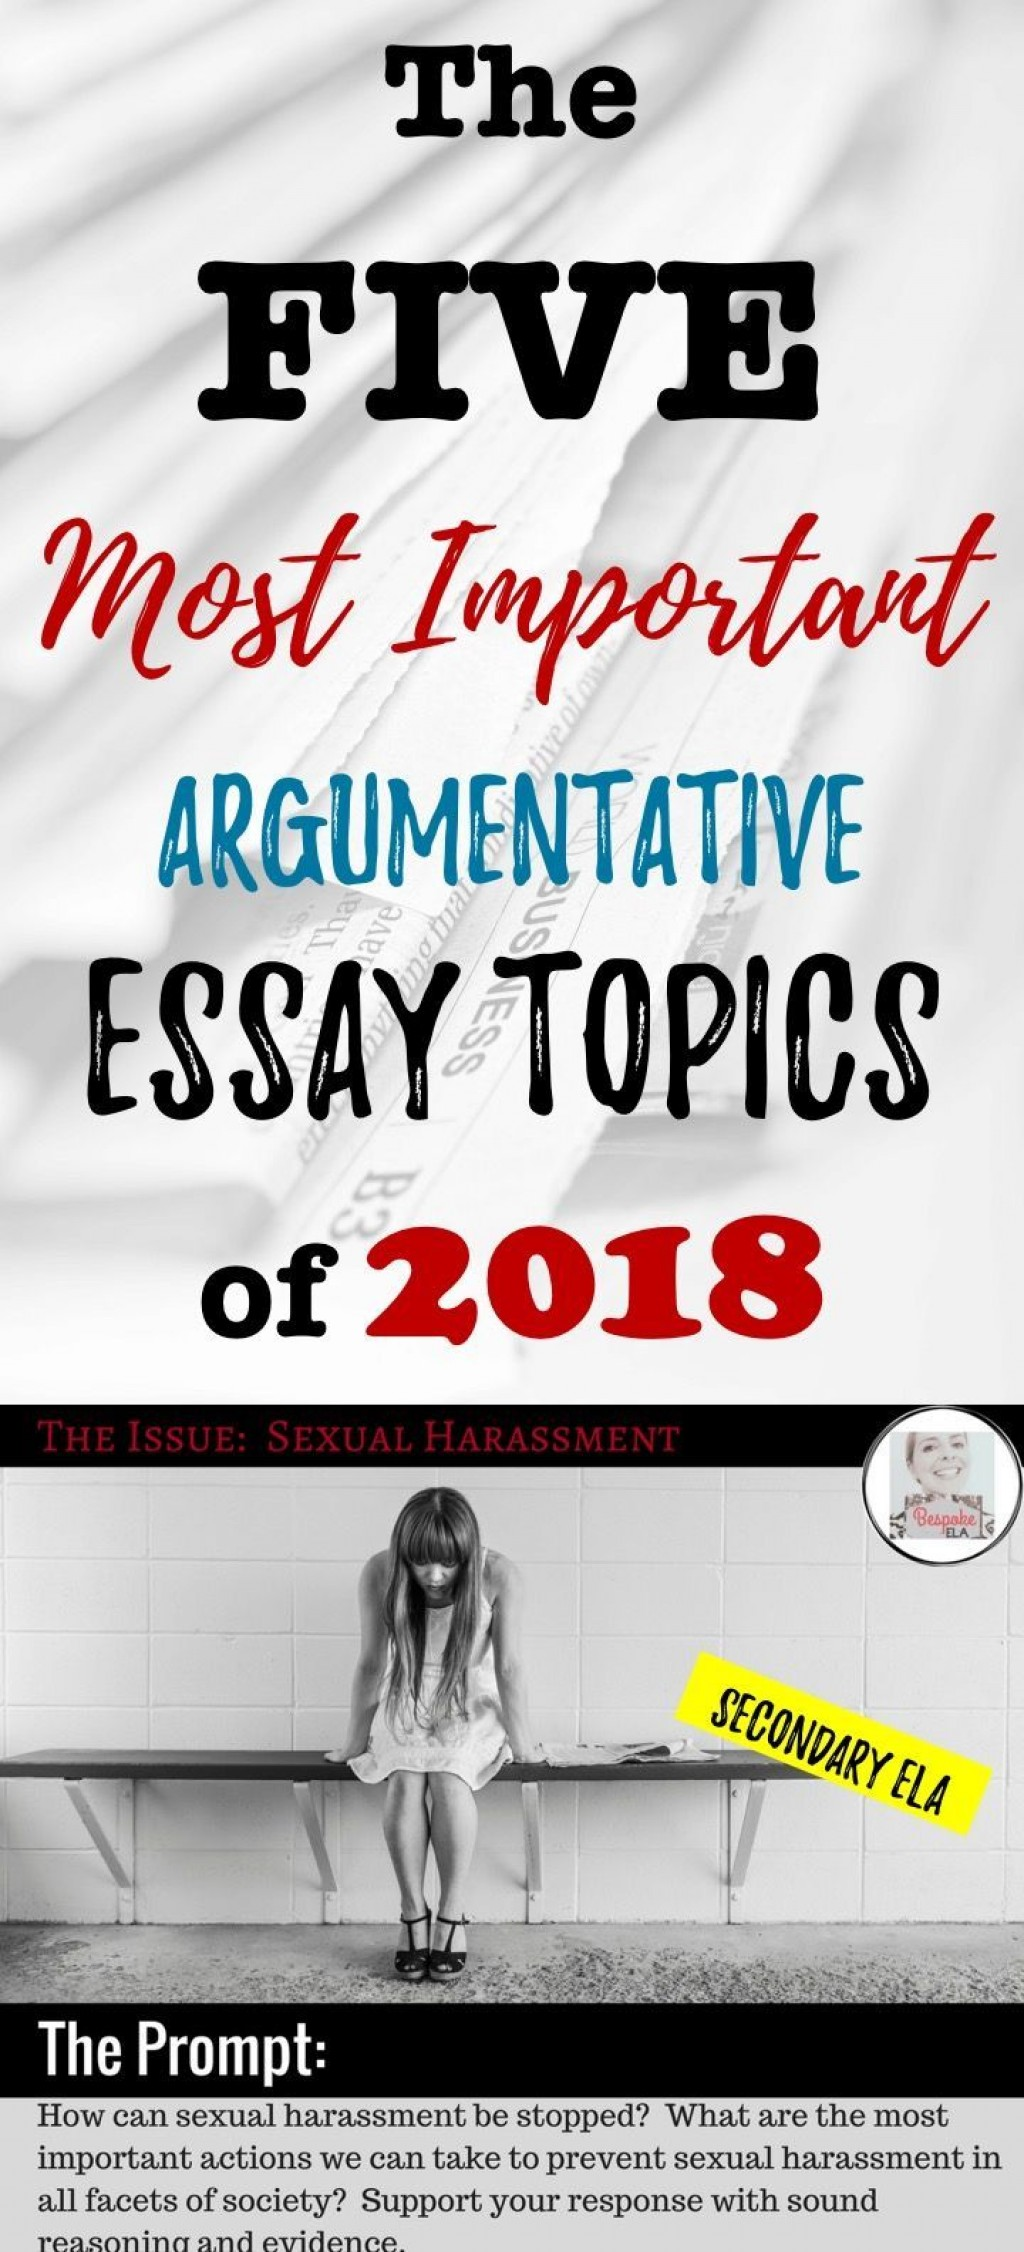 005 Argumentative Topics Research Paper Stupendous 2018 Rogerian Essay In The Philippines Large